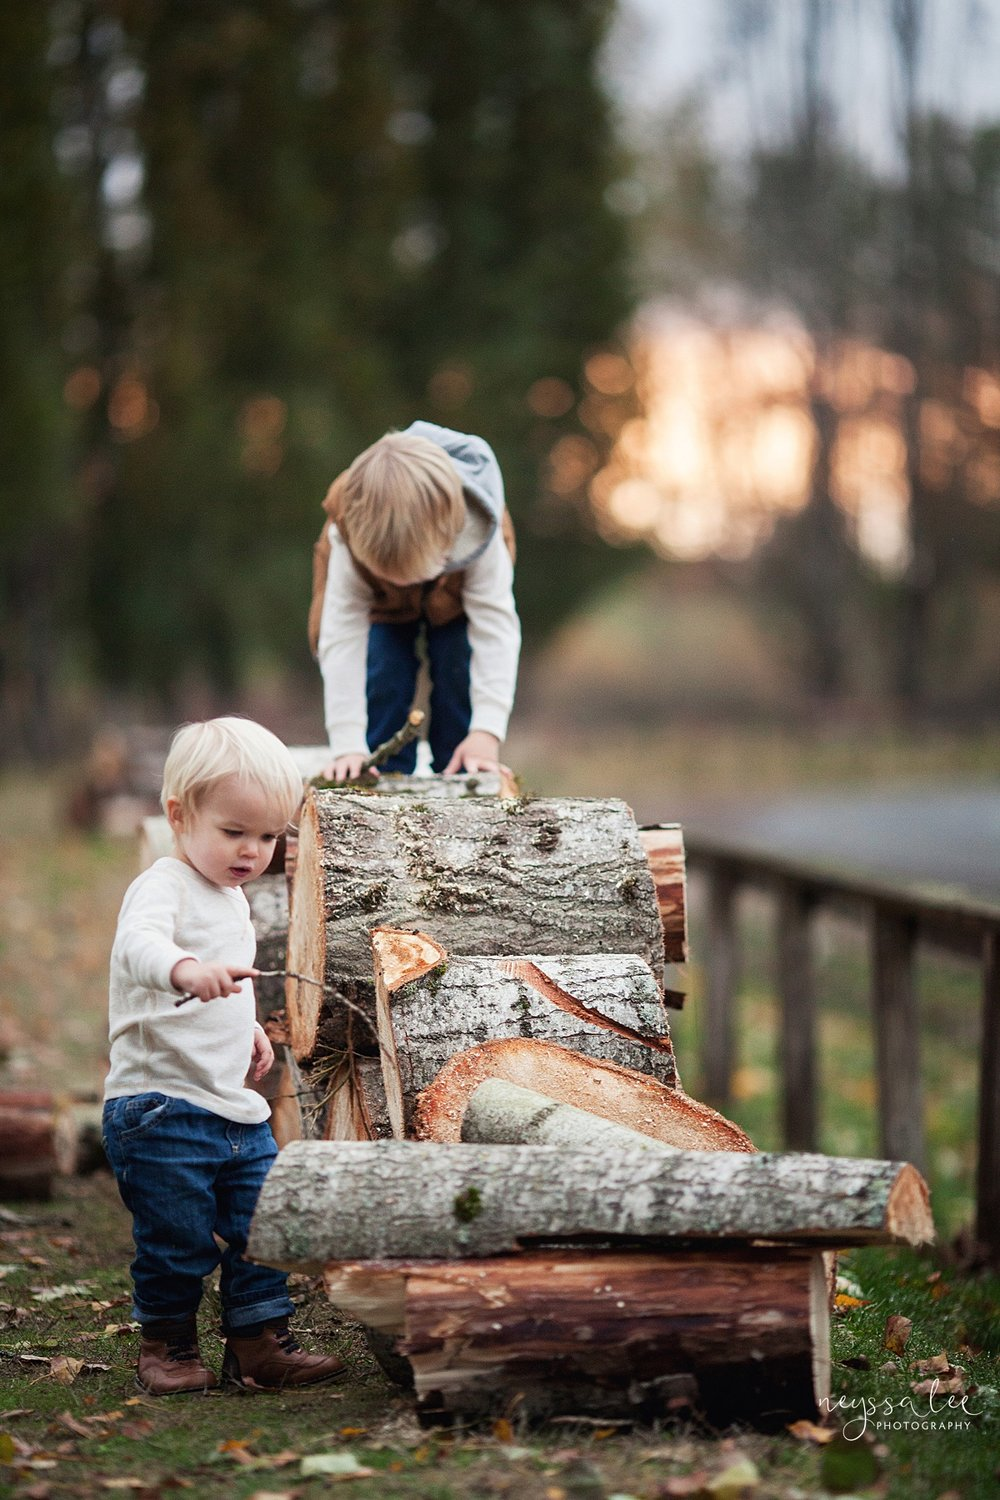 Neyssa Lee Photography, Snoqualmie Family Photographer, Fall Family Photos, boys playing on woodpile